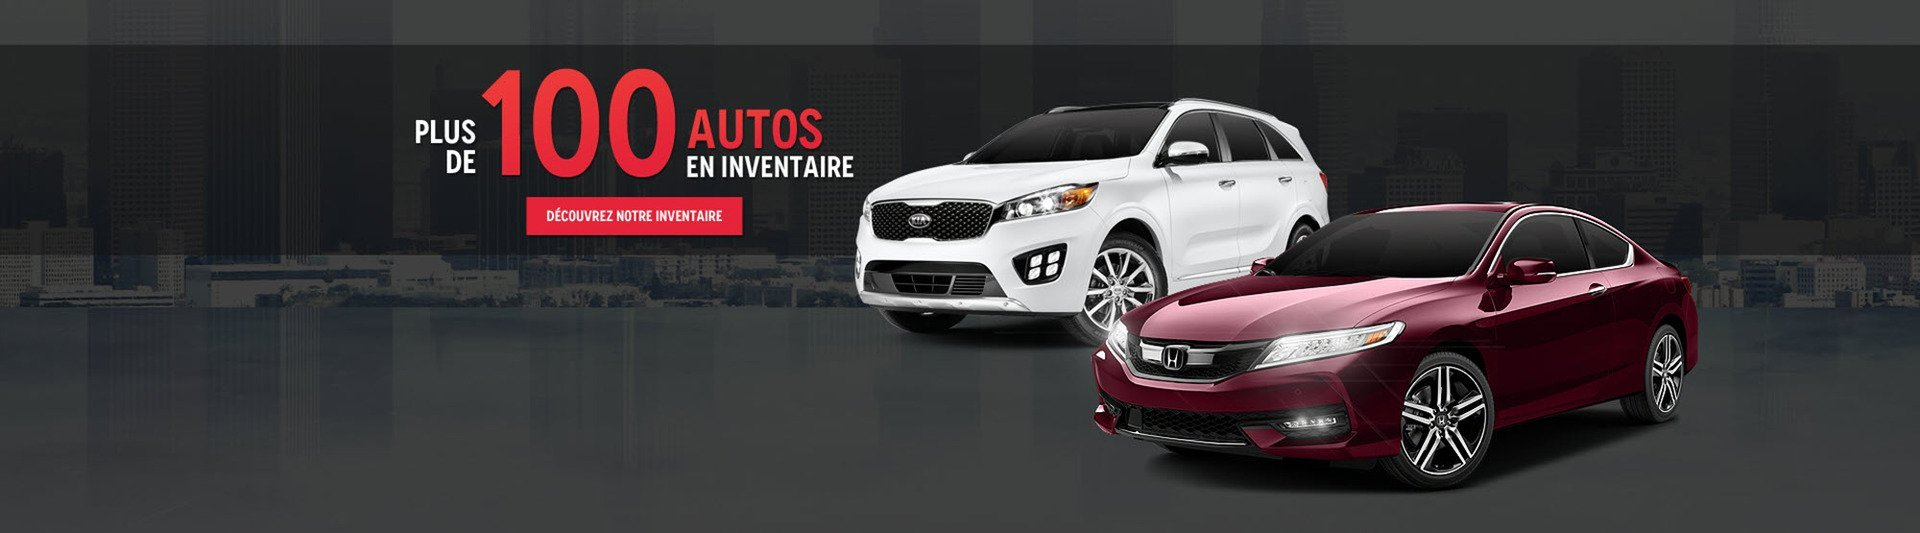 RD AUTO PLUS-banner1